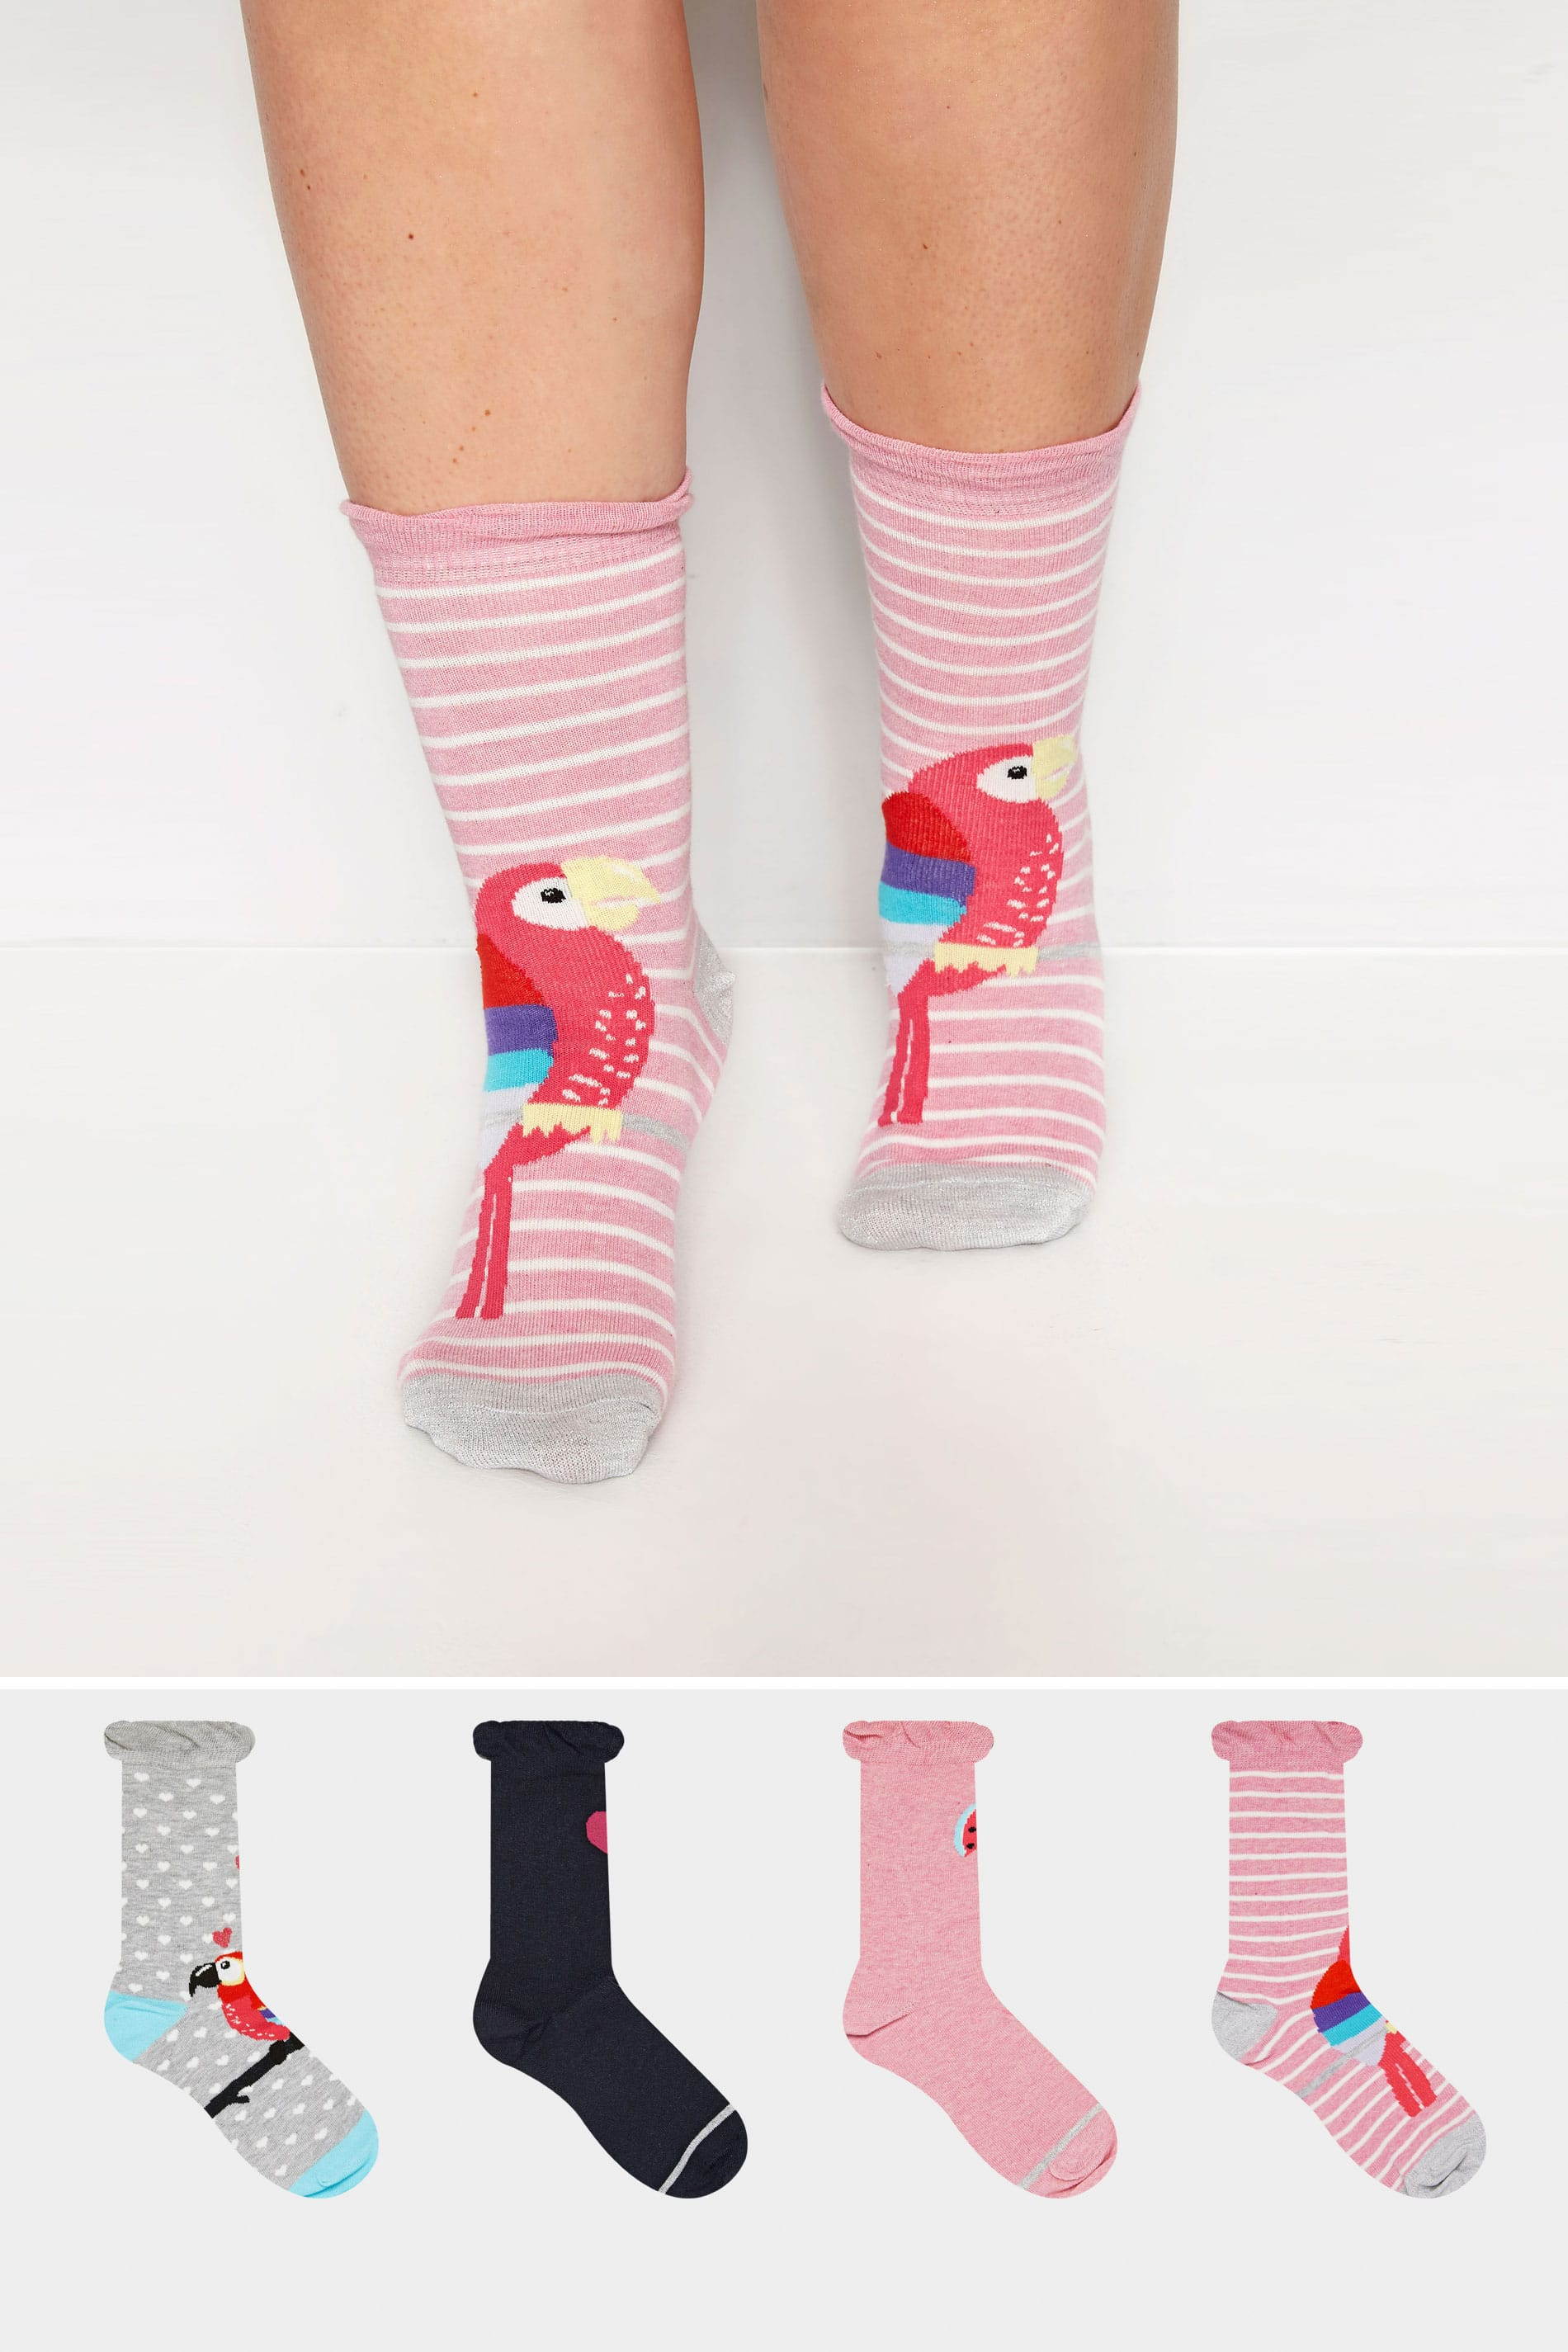 4 PACK Parrot Ankle Socks